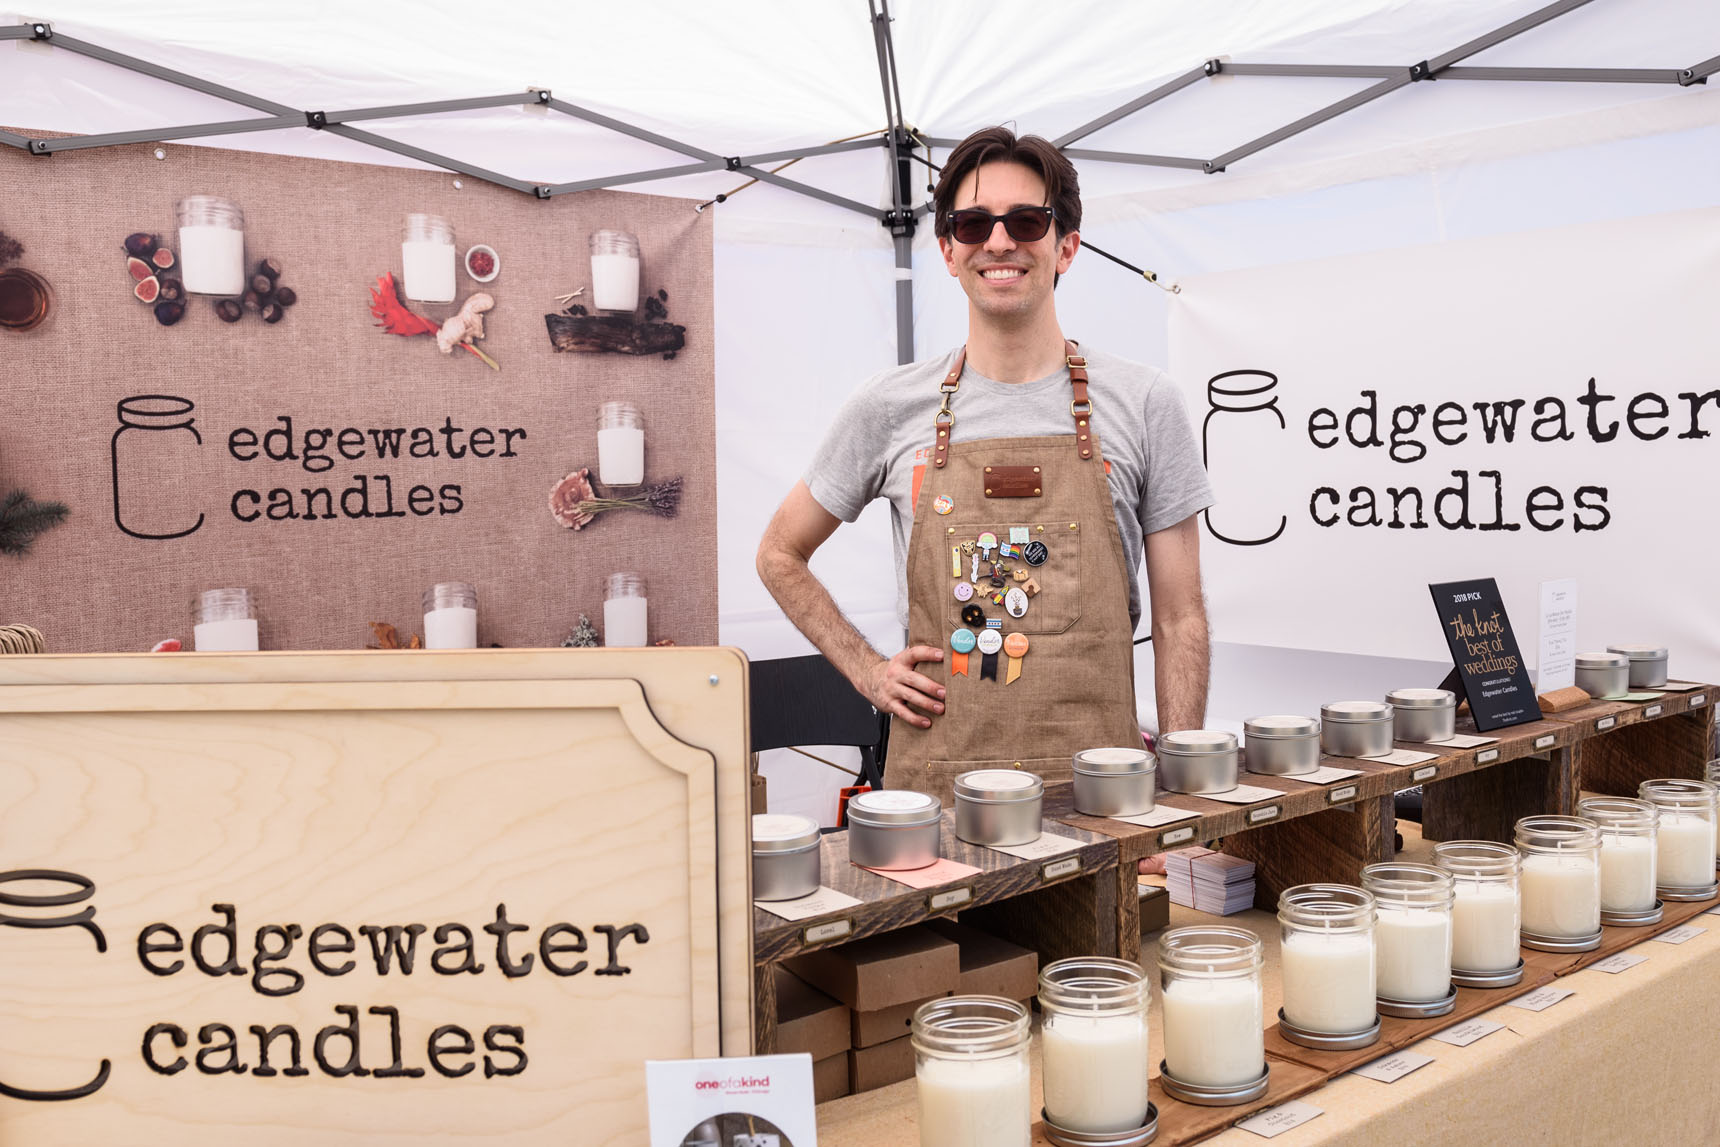 EdgeFest 2018 by the Edgewater Chamber of Commerce - Event Photography by Michael Courier